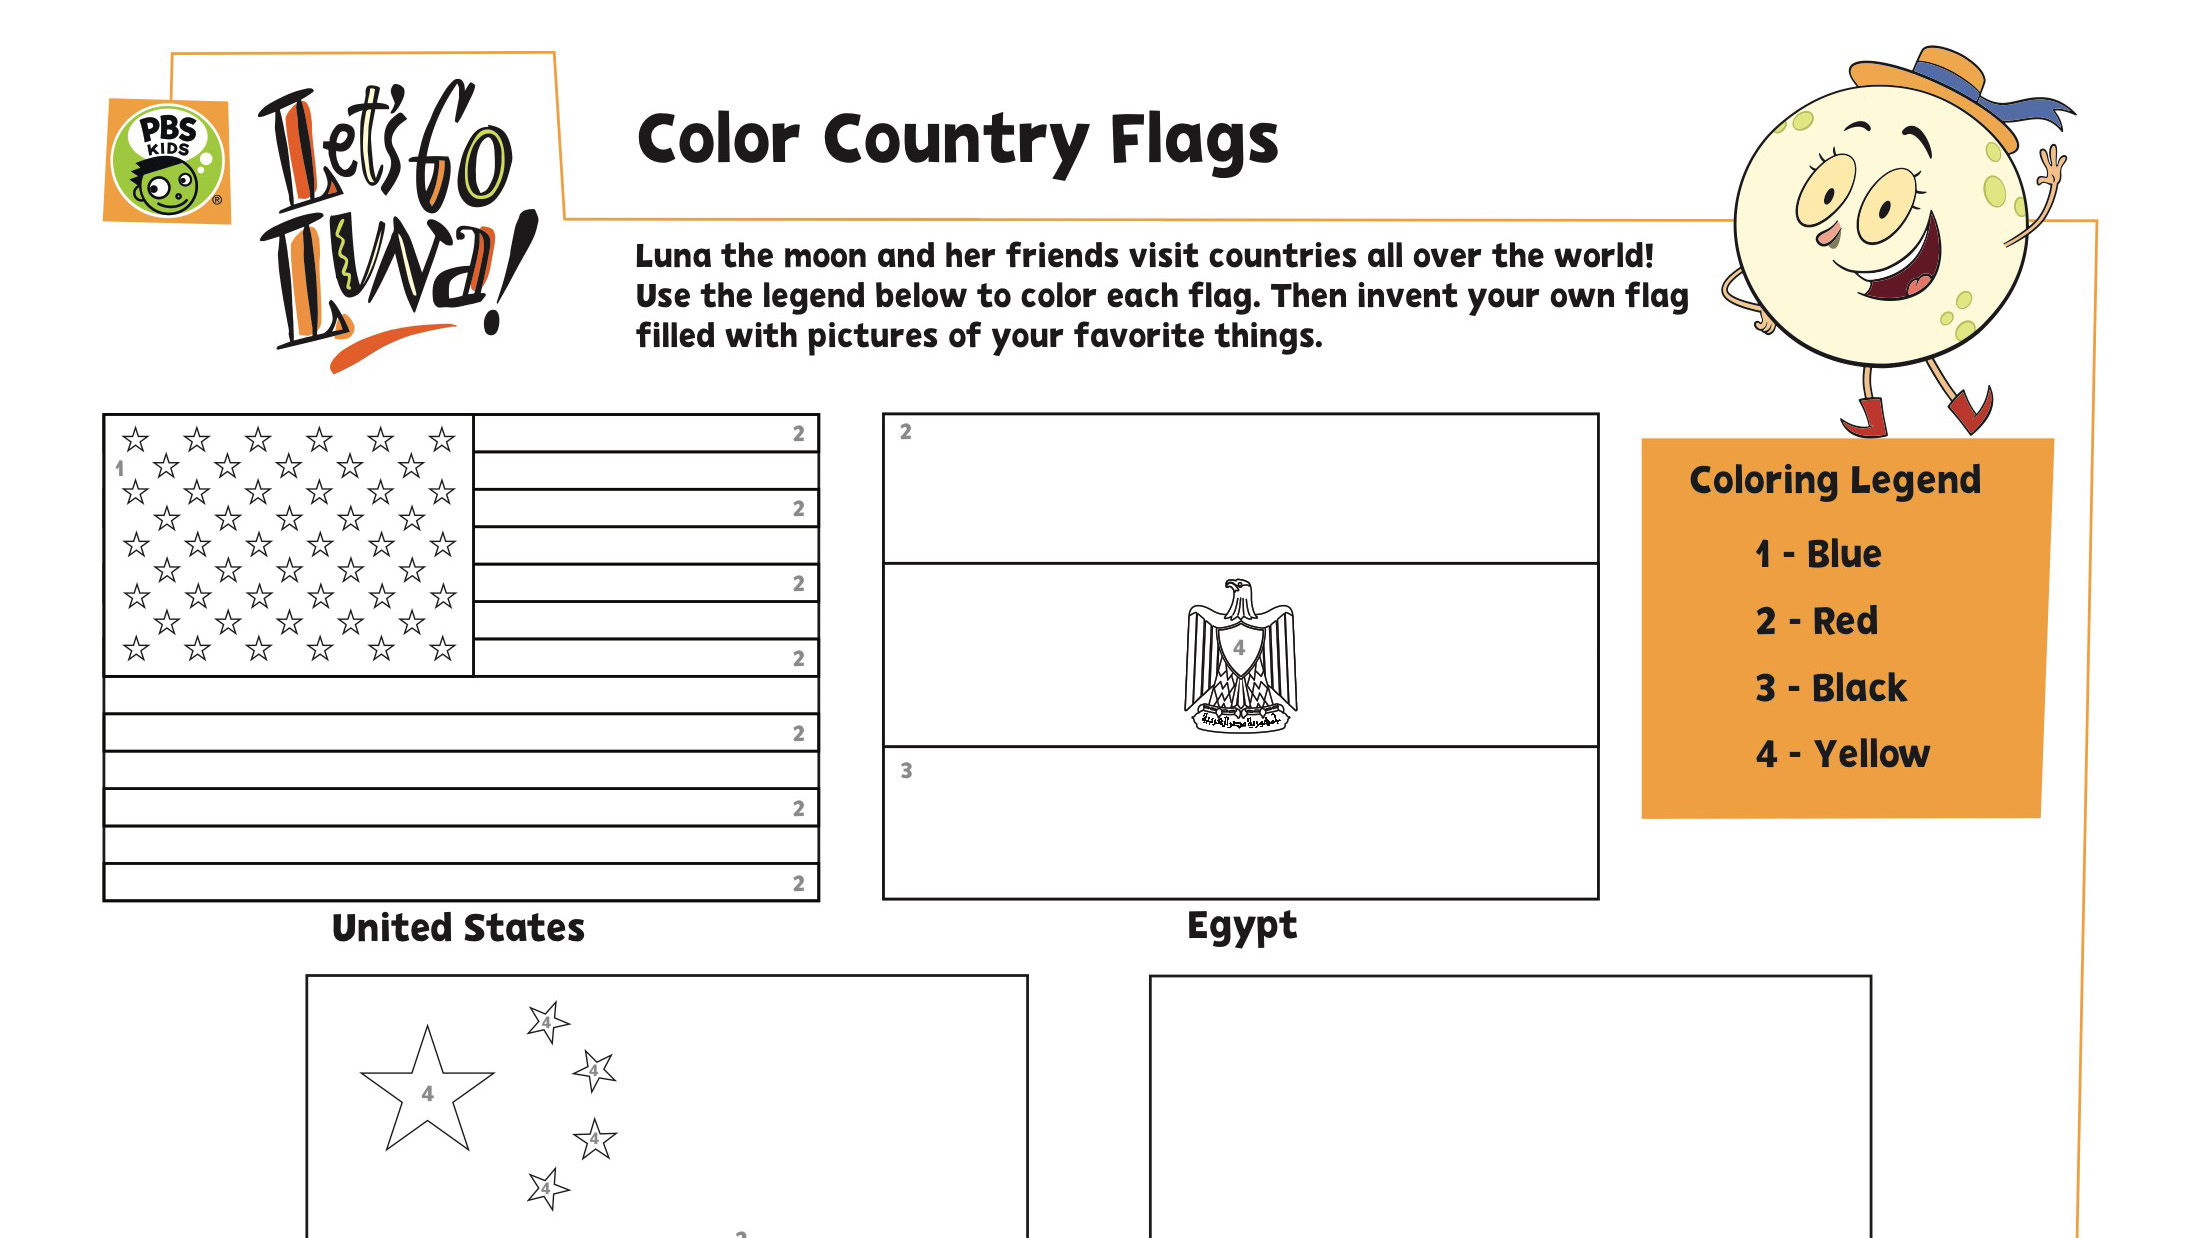 COLOR COUNTRY FLAGS